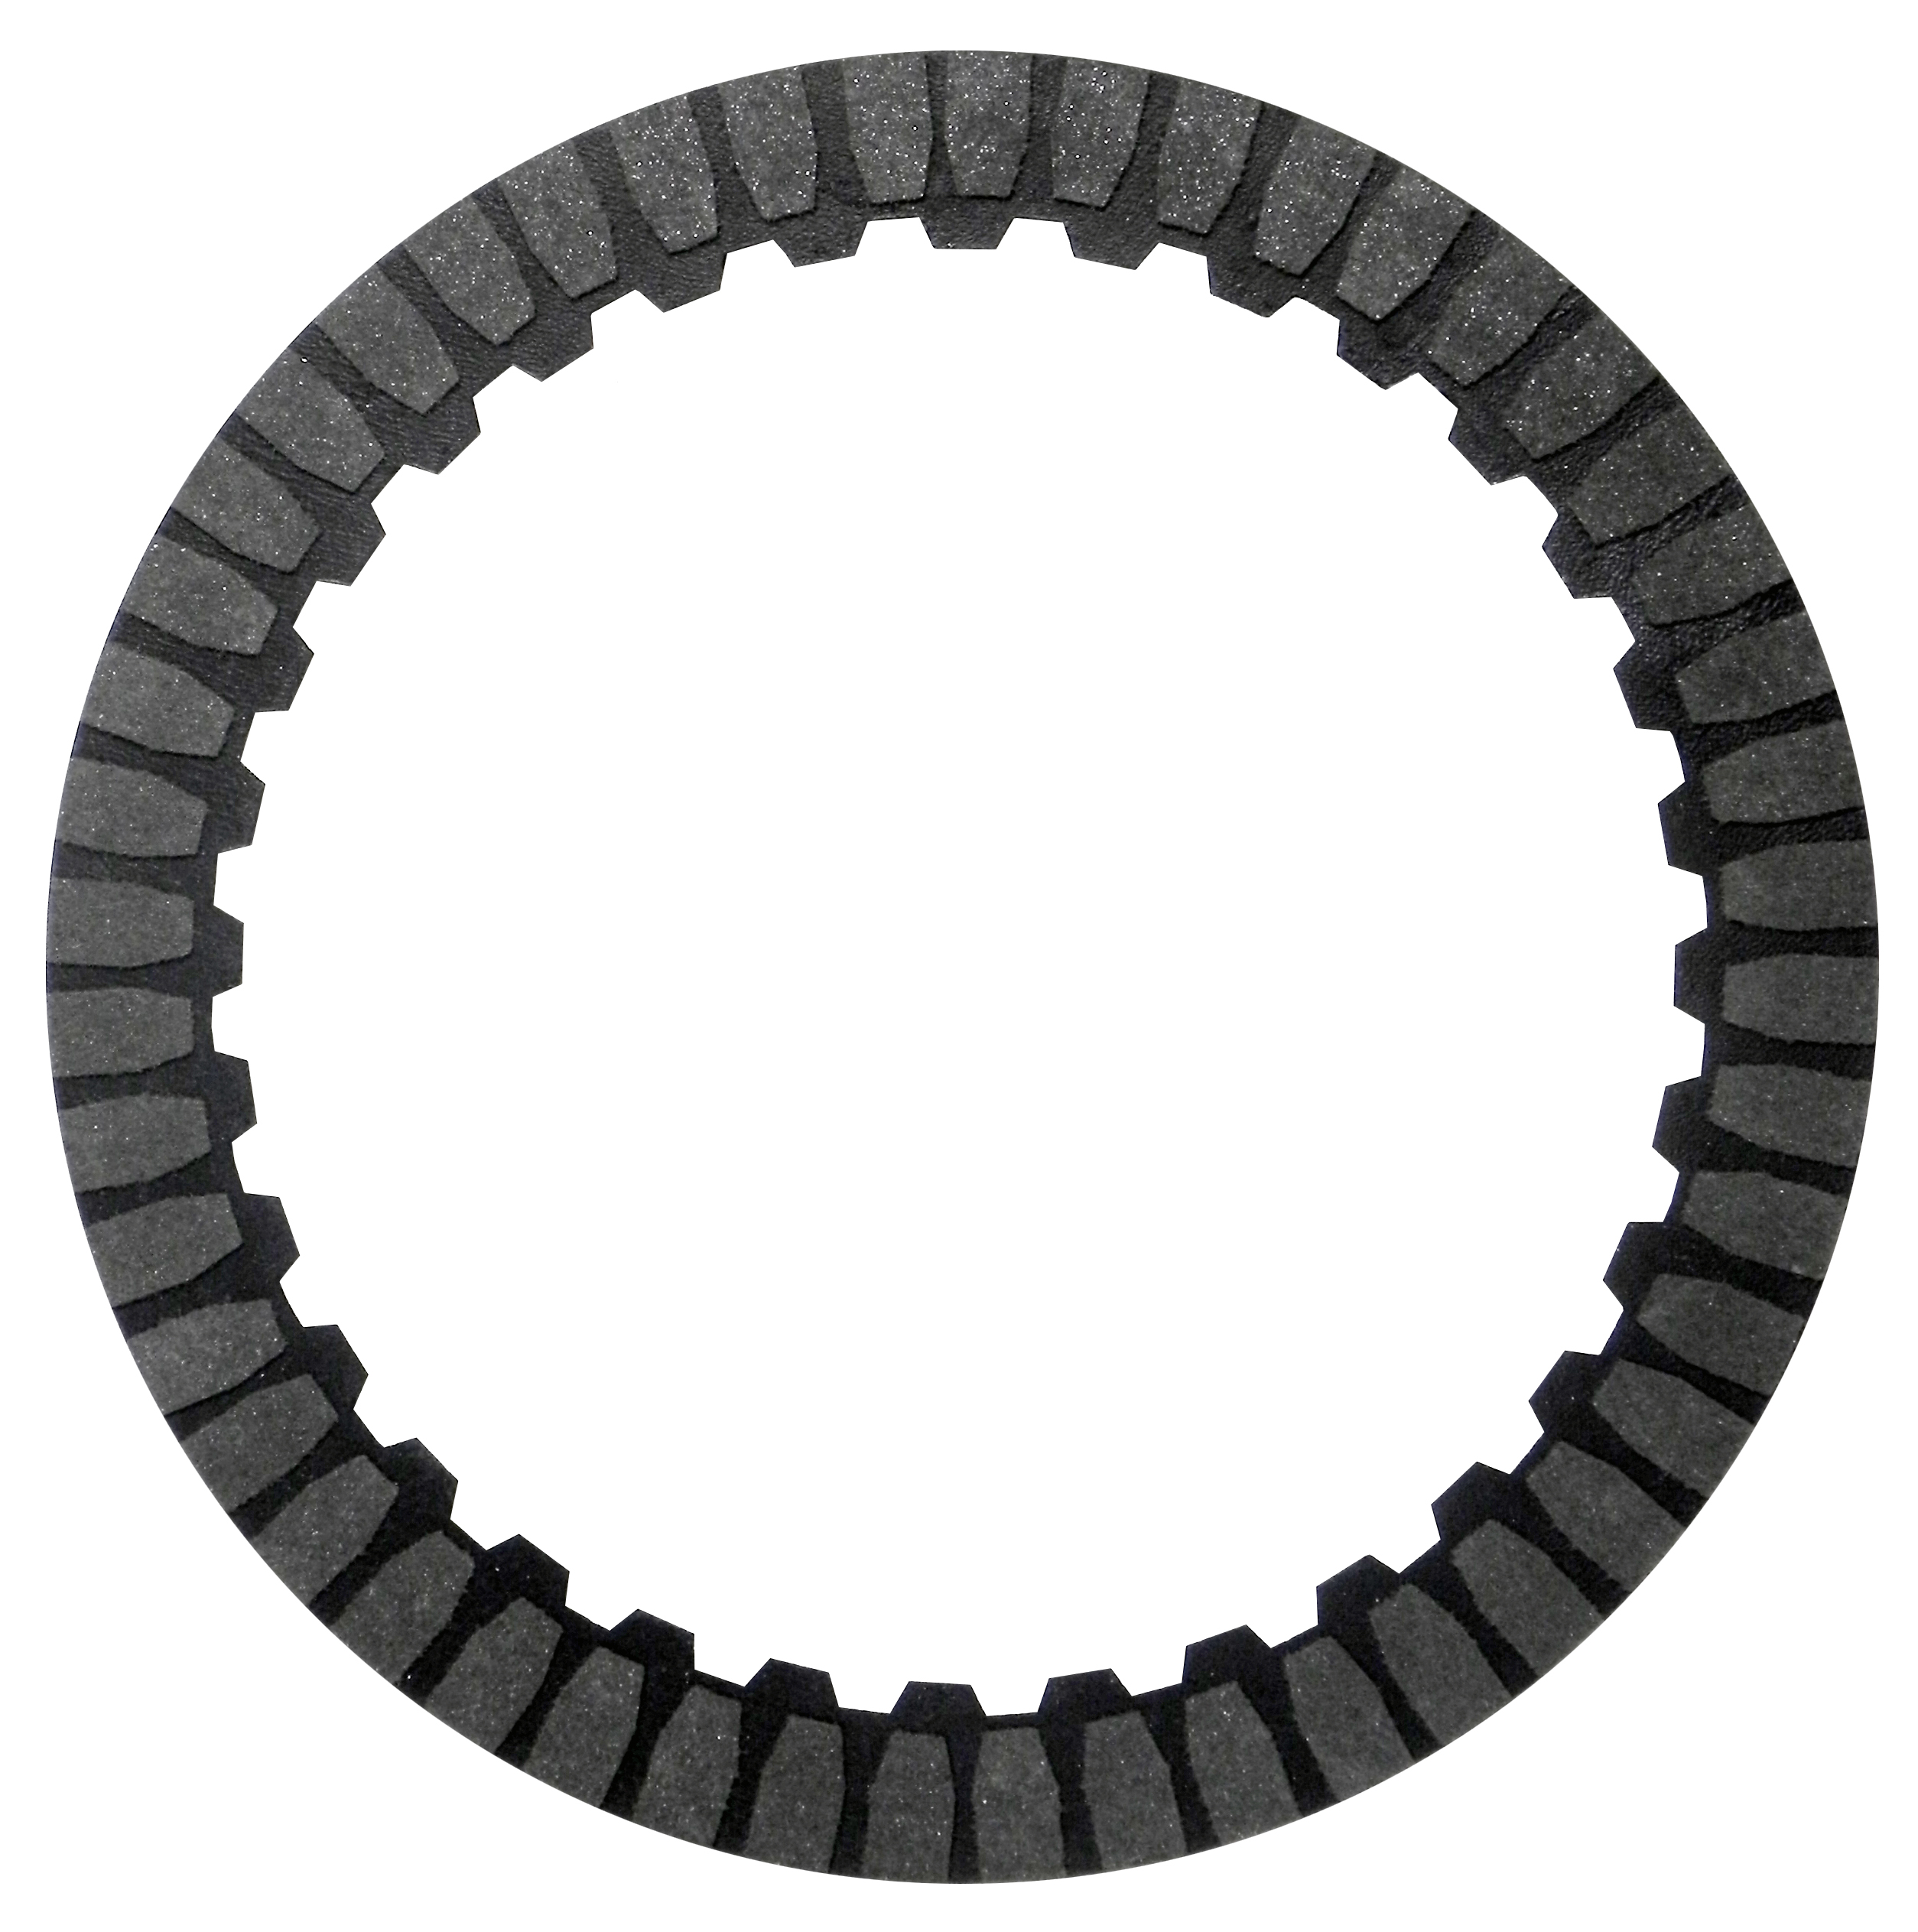 R572411 | 2011-ON Friction Clutch Plate High Energy Overdrive Clutch (Segmented) High Energy